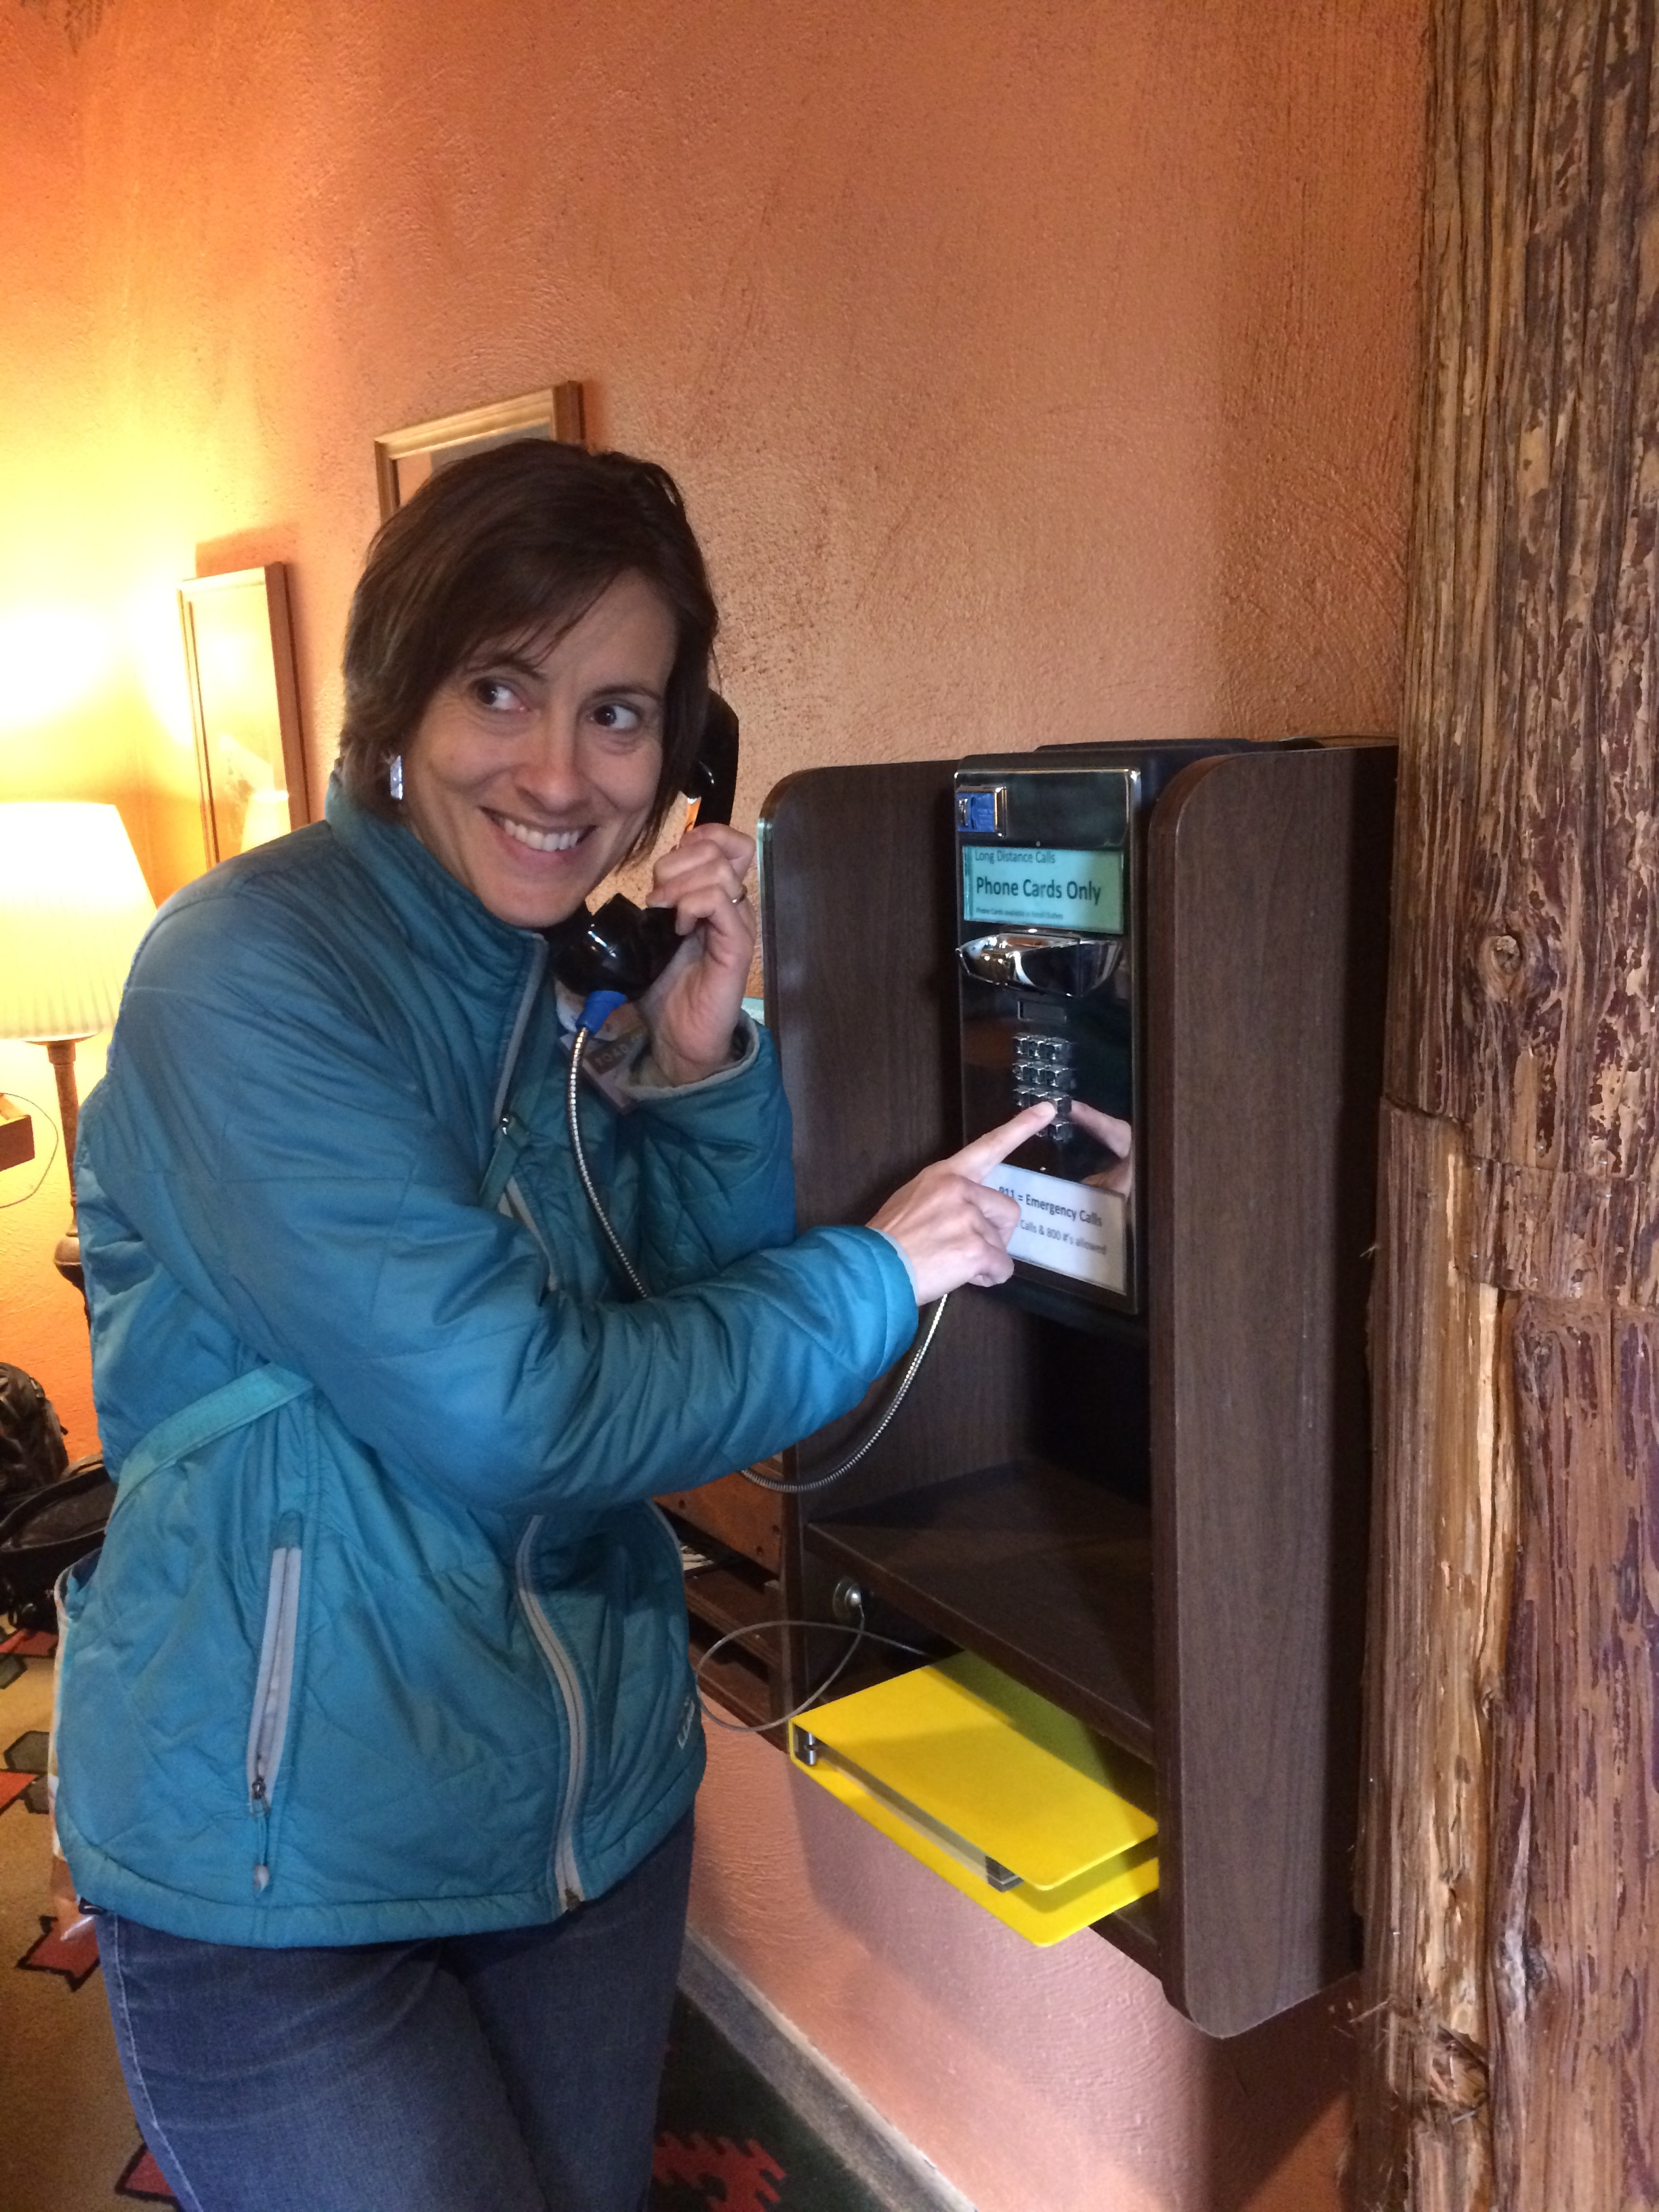 And yes, the hotel pay phone still works!